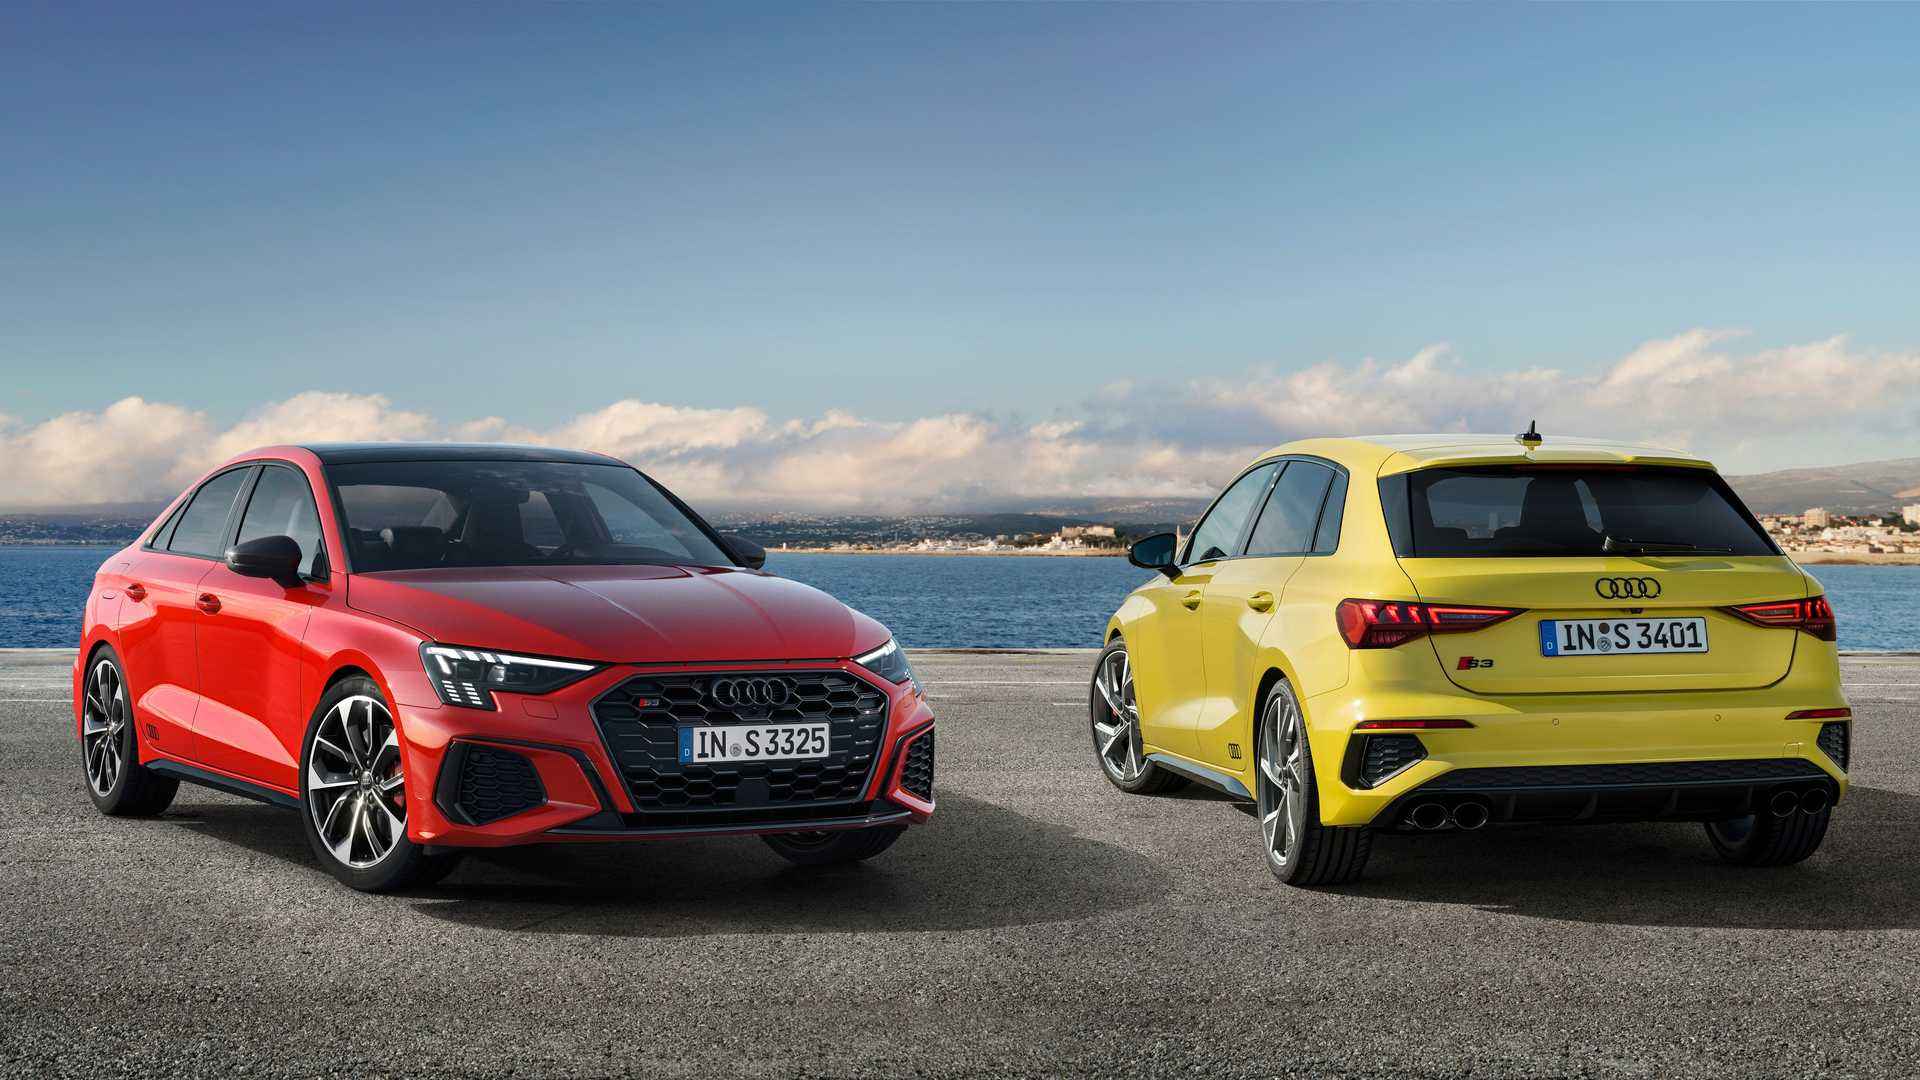 2021 Audi S3 Revealed In Sportback And Sedan Flavors With ...